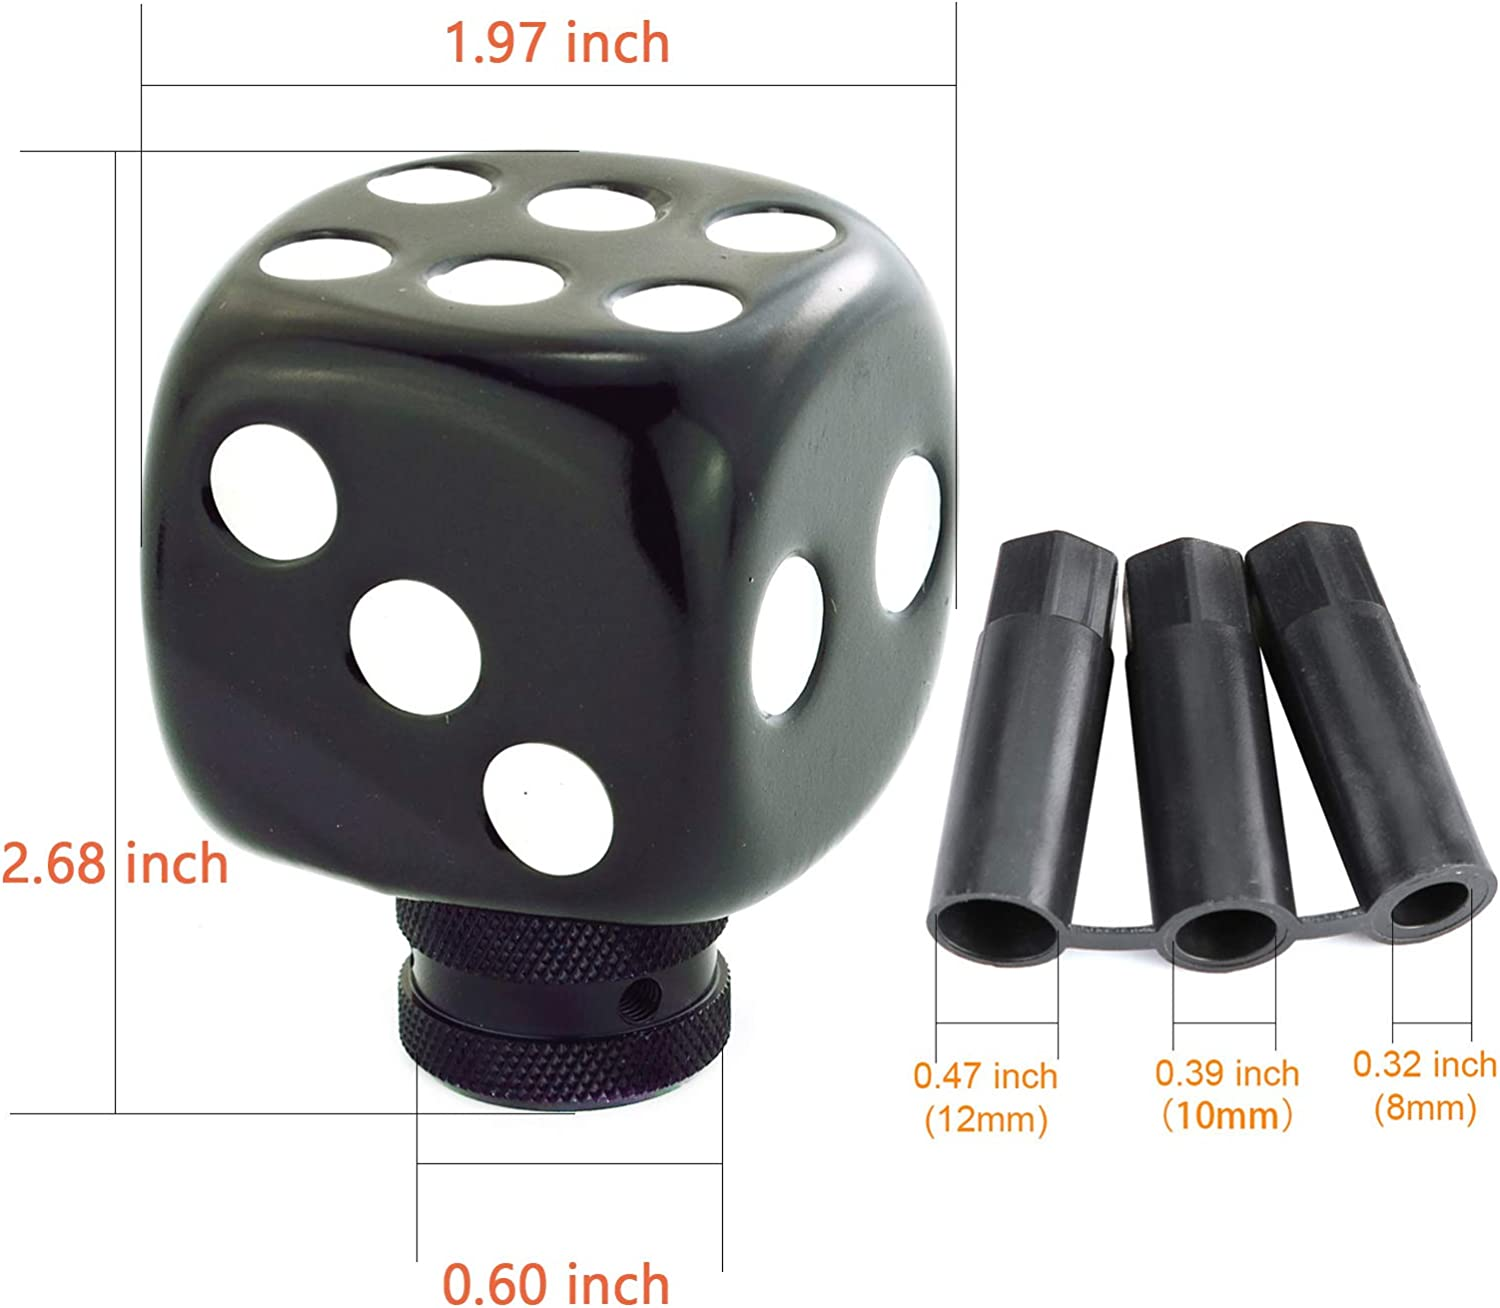 Black, White Arenbel Car Manual Knob Dice Stick Shift Knobs Shifting Shifter Handle fit Most Automatic Transmission Cars,